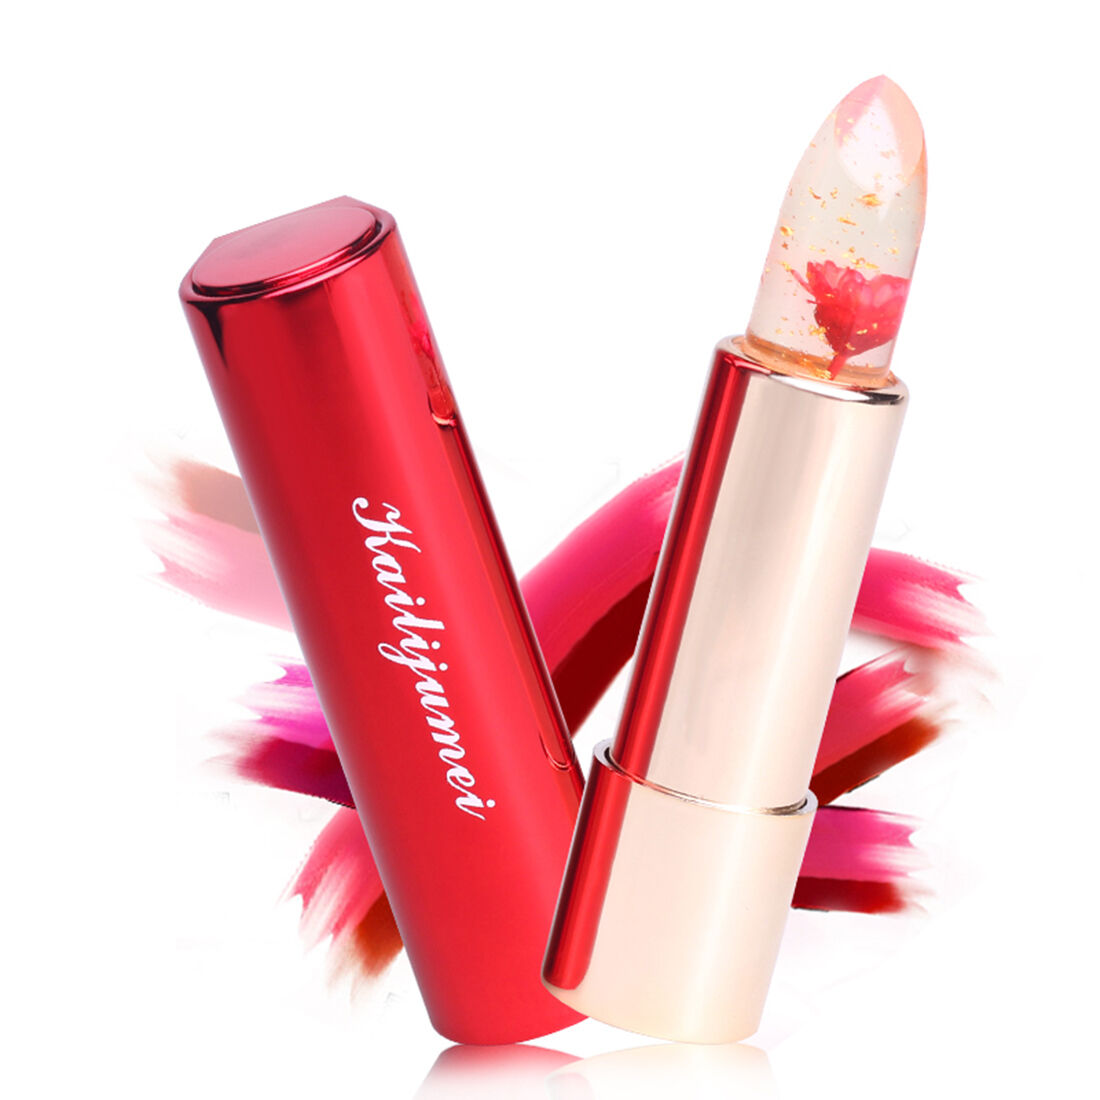 Kailijumei Flower Jelly Lipstick 100 Original Barbie Doll Powder Ready Stock 4 Of 10 Authentic Temperature Change Color H